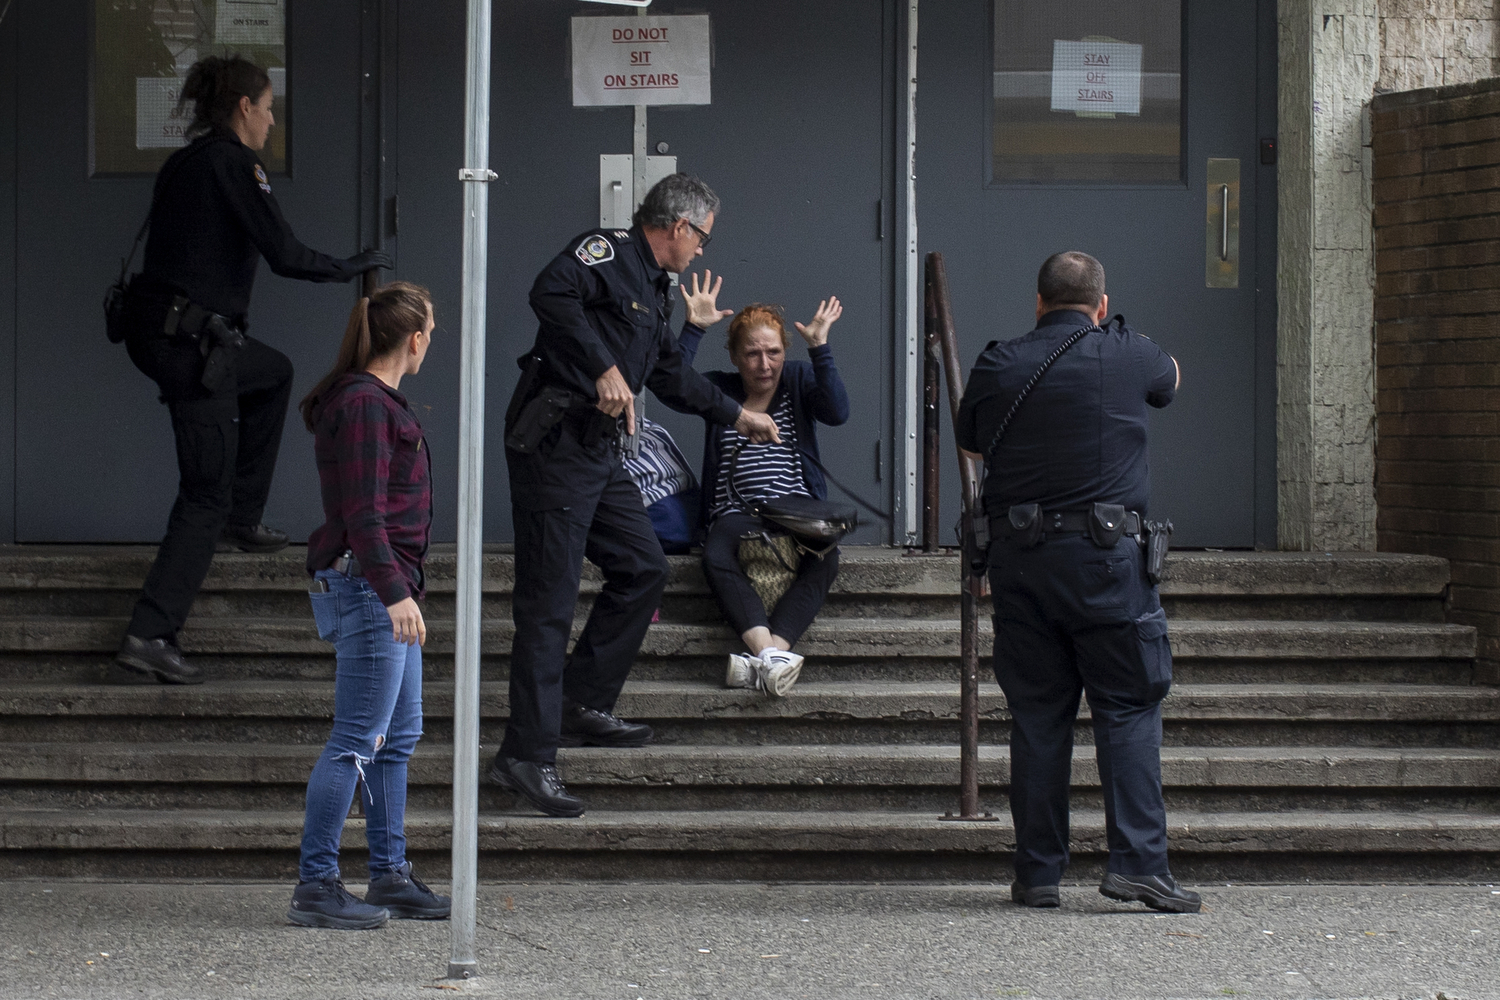 Vancouver police officers draw their guns while arresting a woman for reports of an illegal weapon in the Downtown Eastside of Vancouver on May 20, 2020. (Ben Nelms/CBC Vancouver)